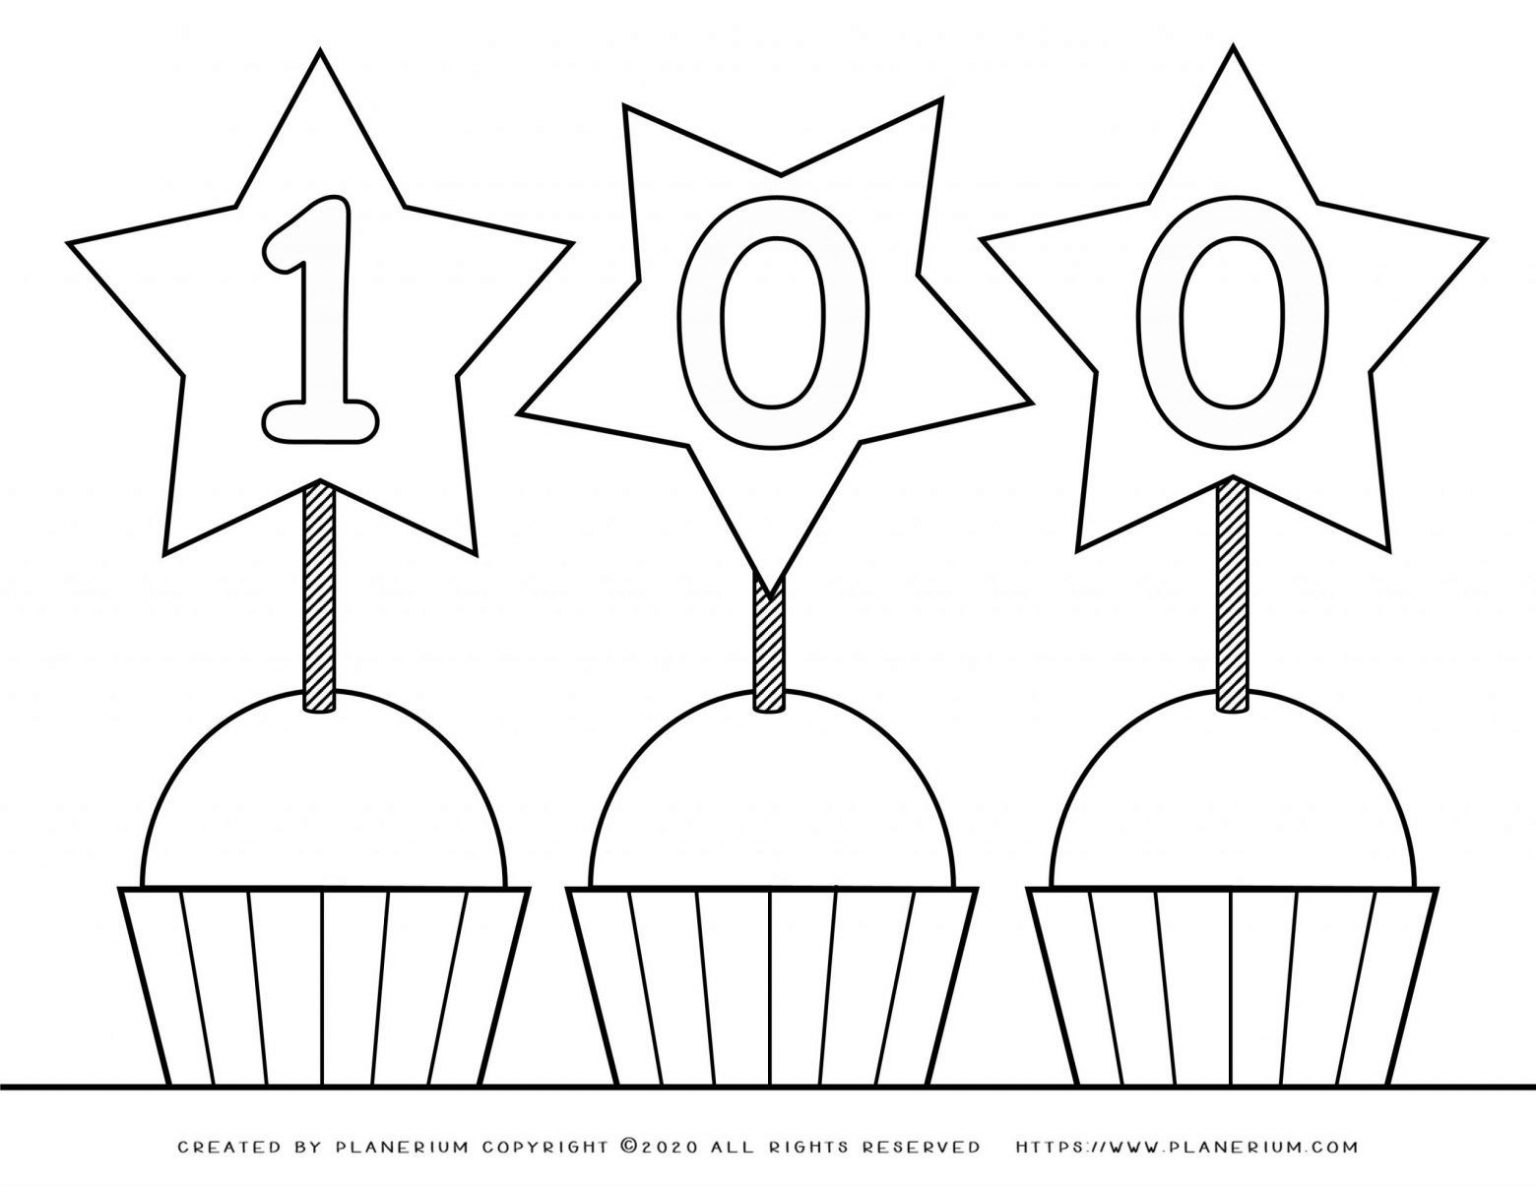 100 days of School - Coloring Page - Stars   Planerium